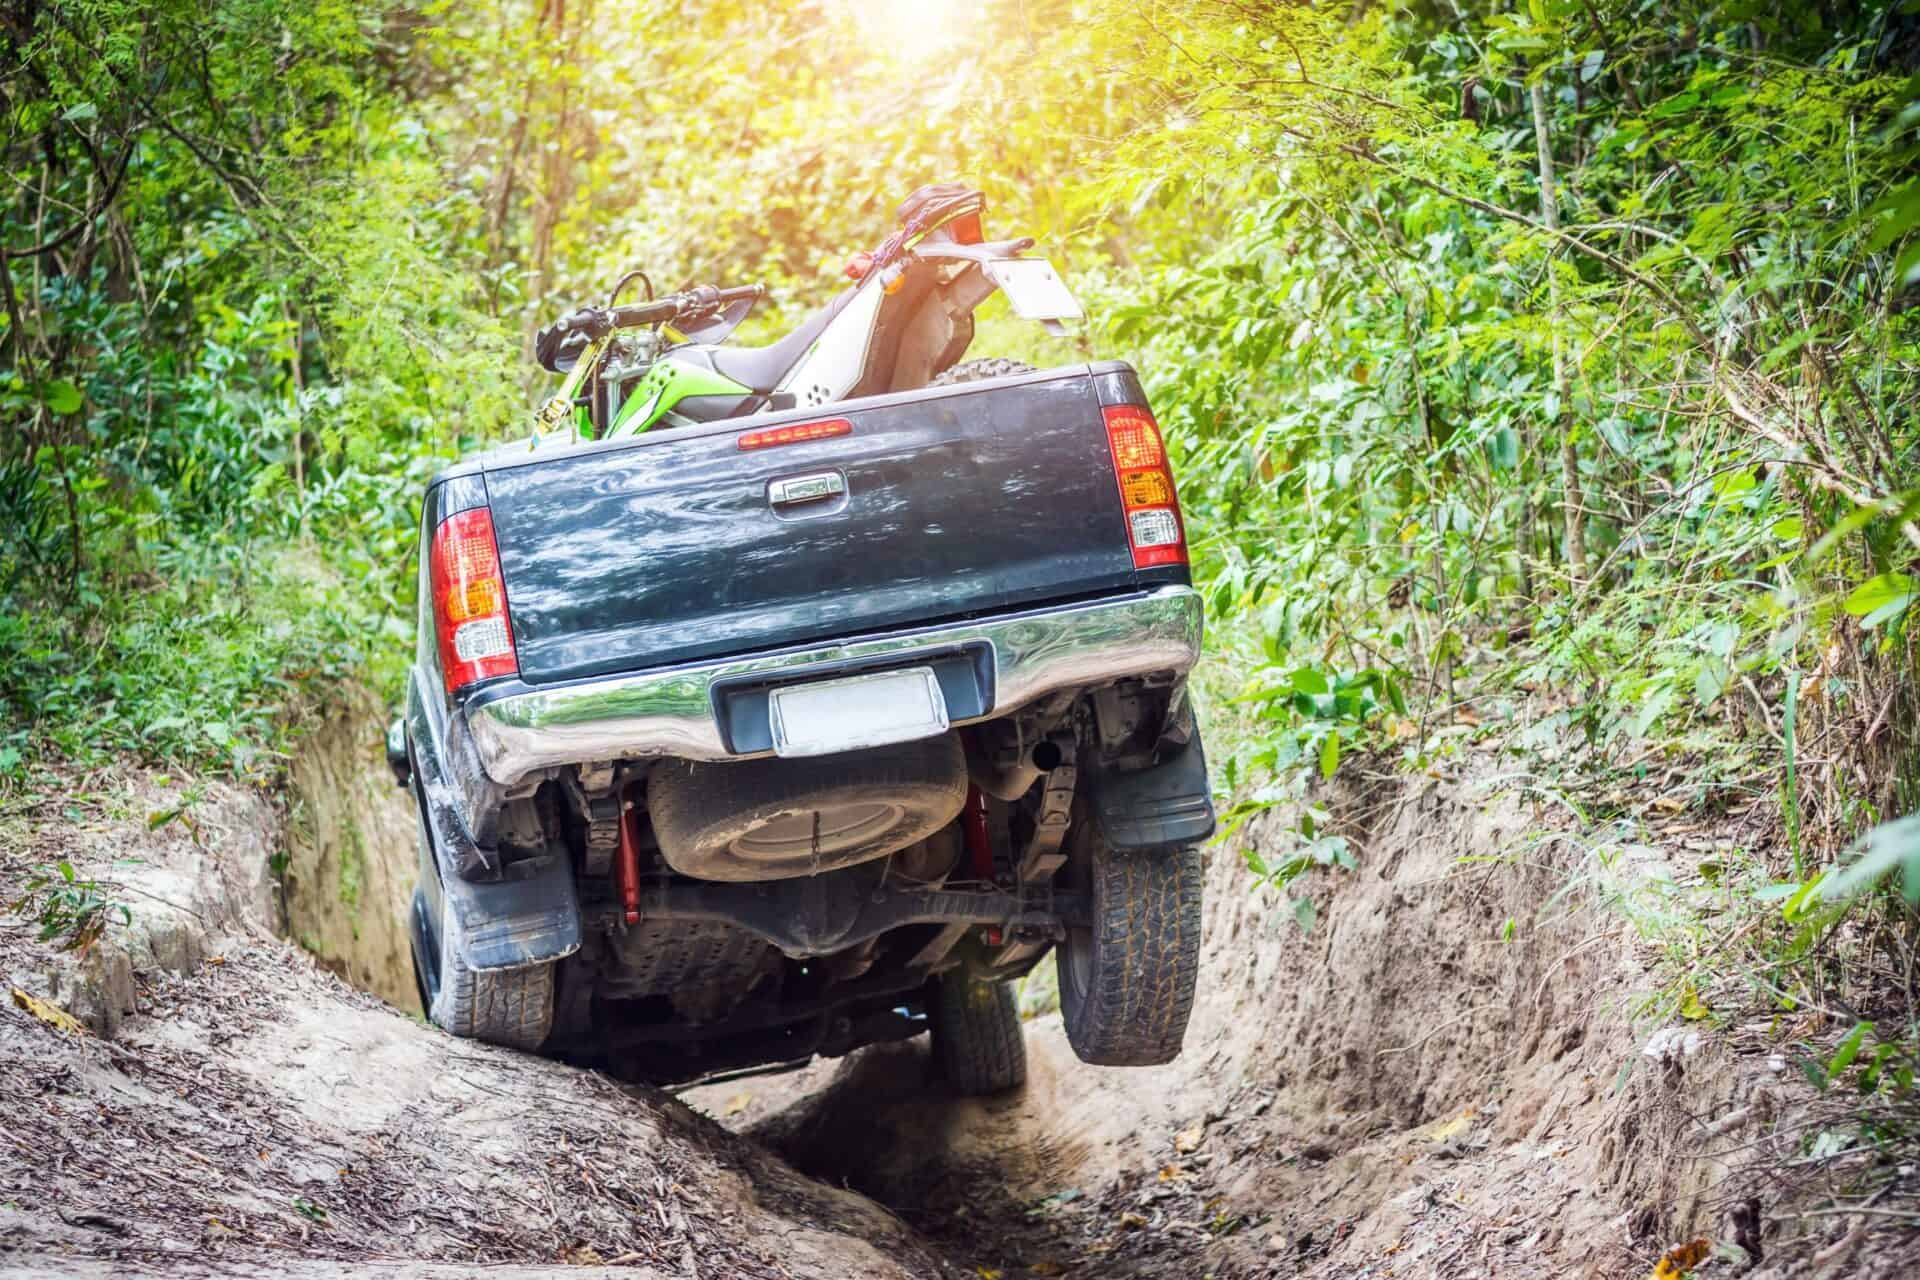 The Best 4WD Mechanic near me is 4x4 Obsession, Melbourne, Victoria